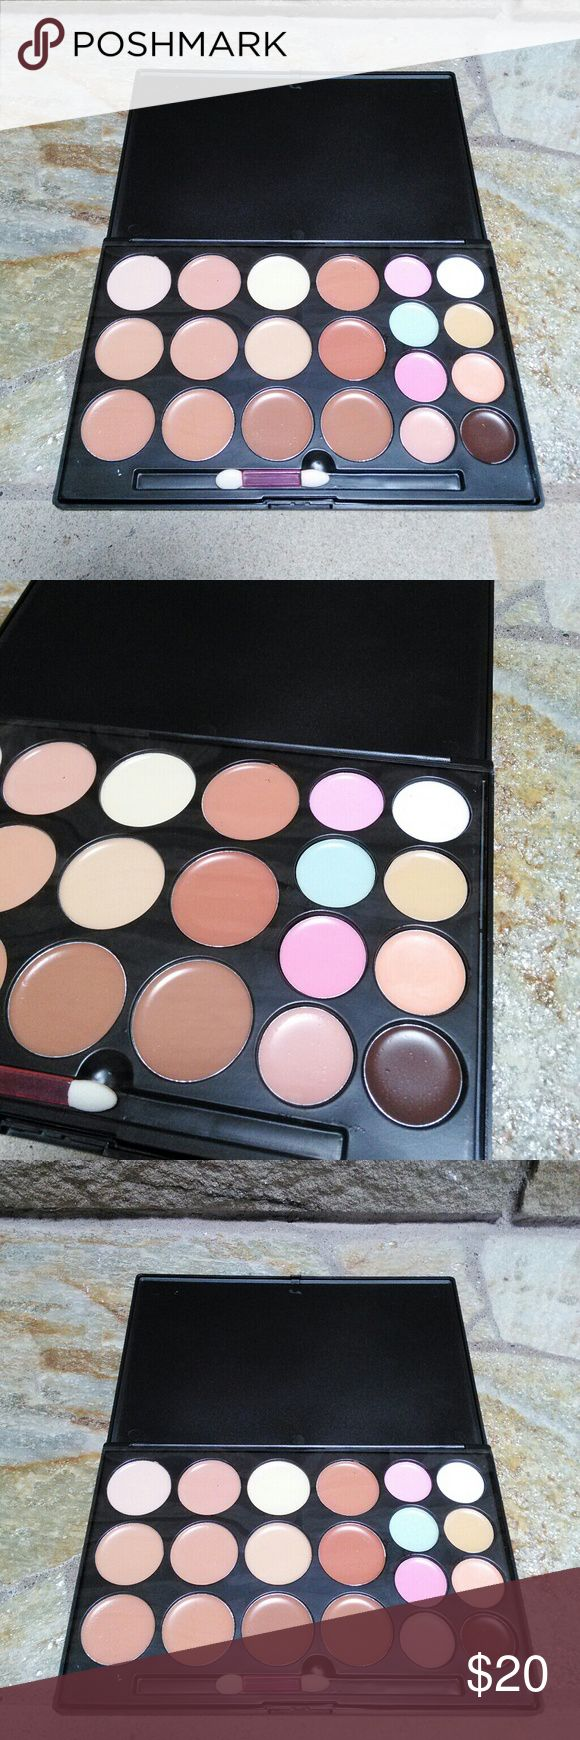 Mineral Corrector Palette SPF 20 by colorescience #20